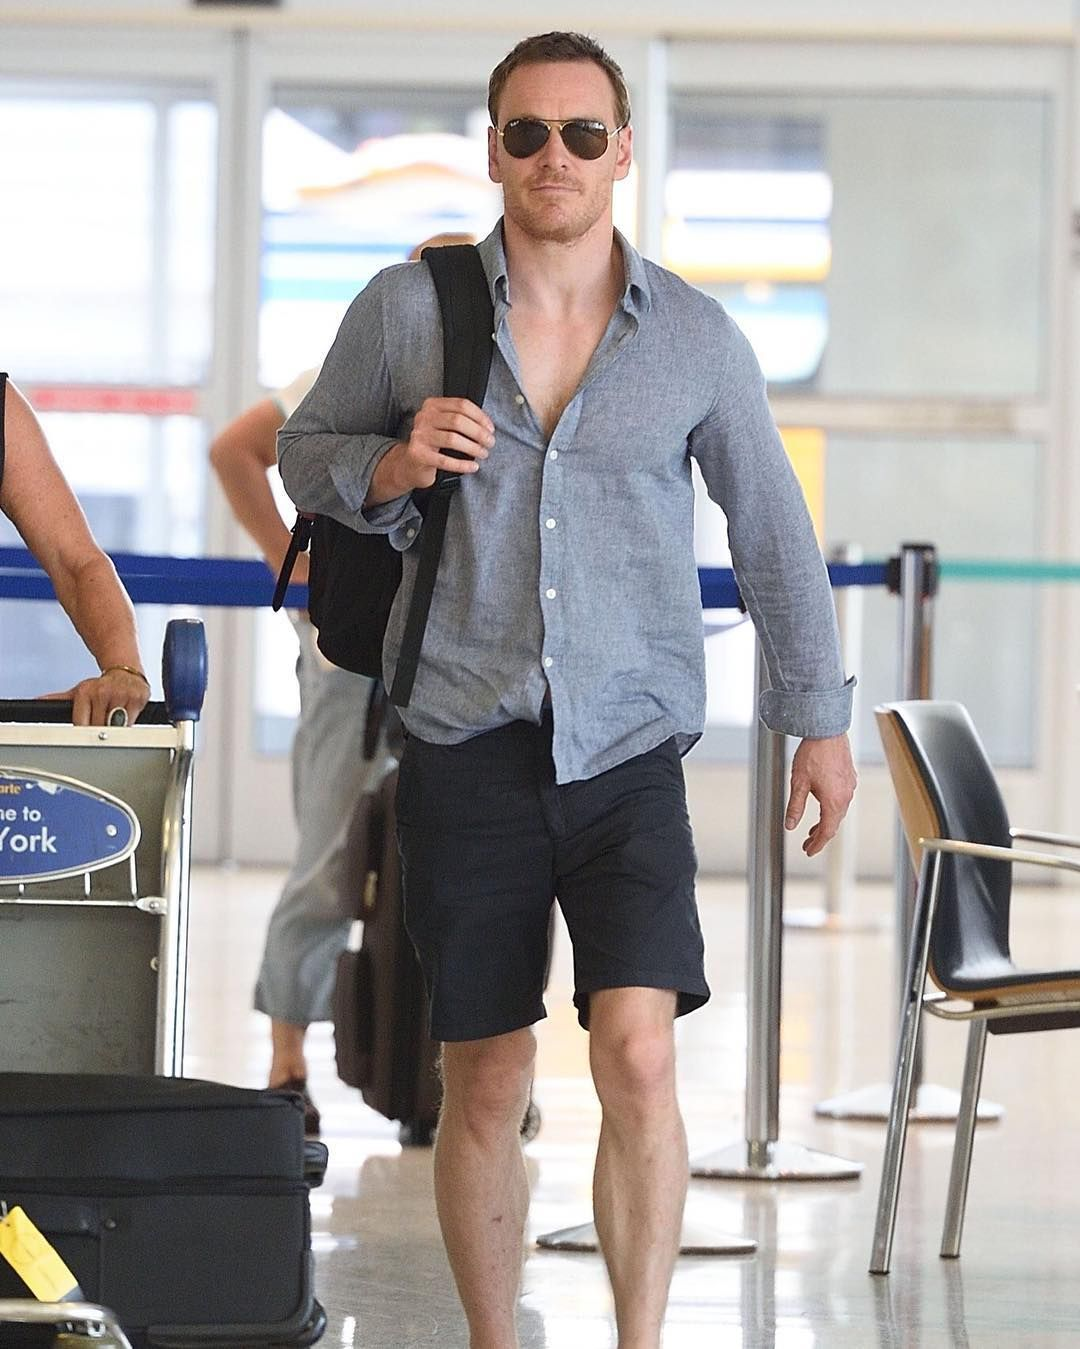 Michael Fassbender at the airport.Why do I love this shot so much? LOL